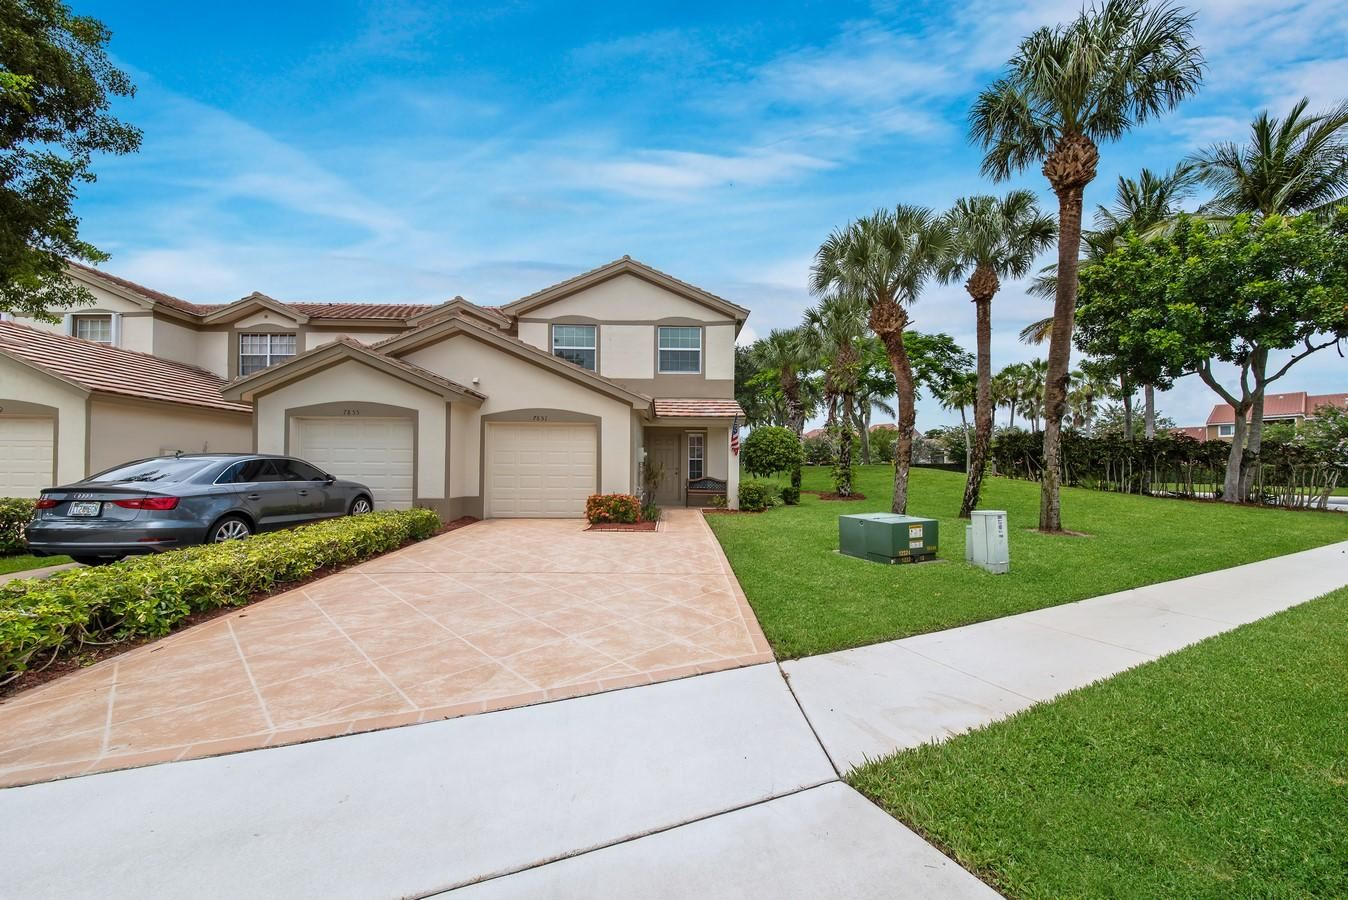 7851 Sienna Springs Drive, Lake Worth, FL 33463 - #: RX-10638233